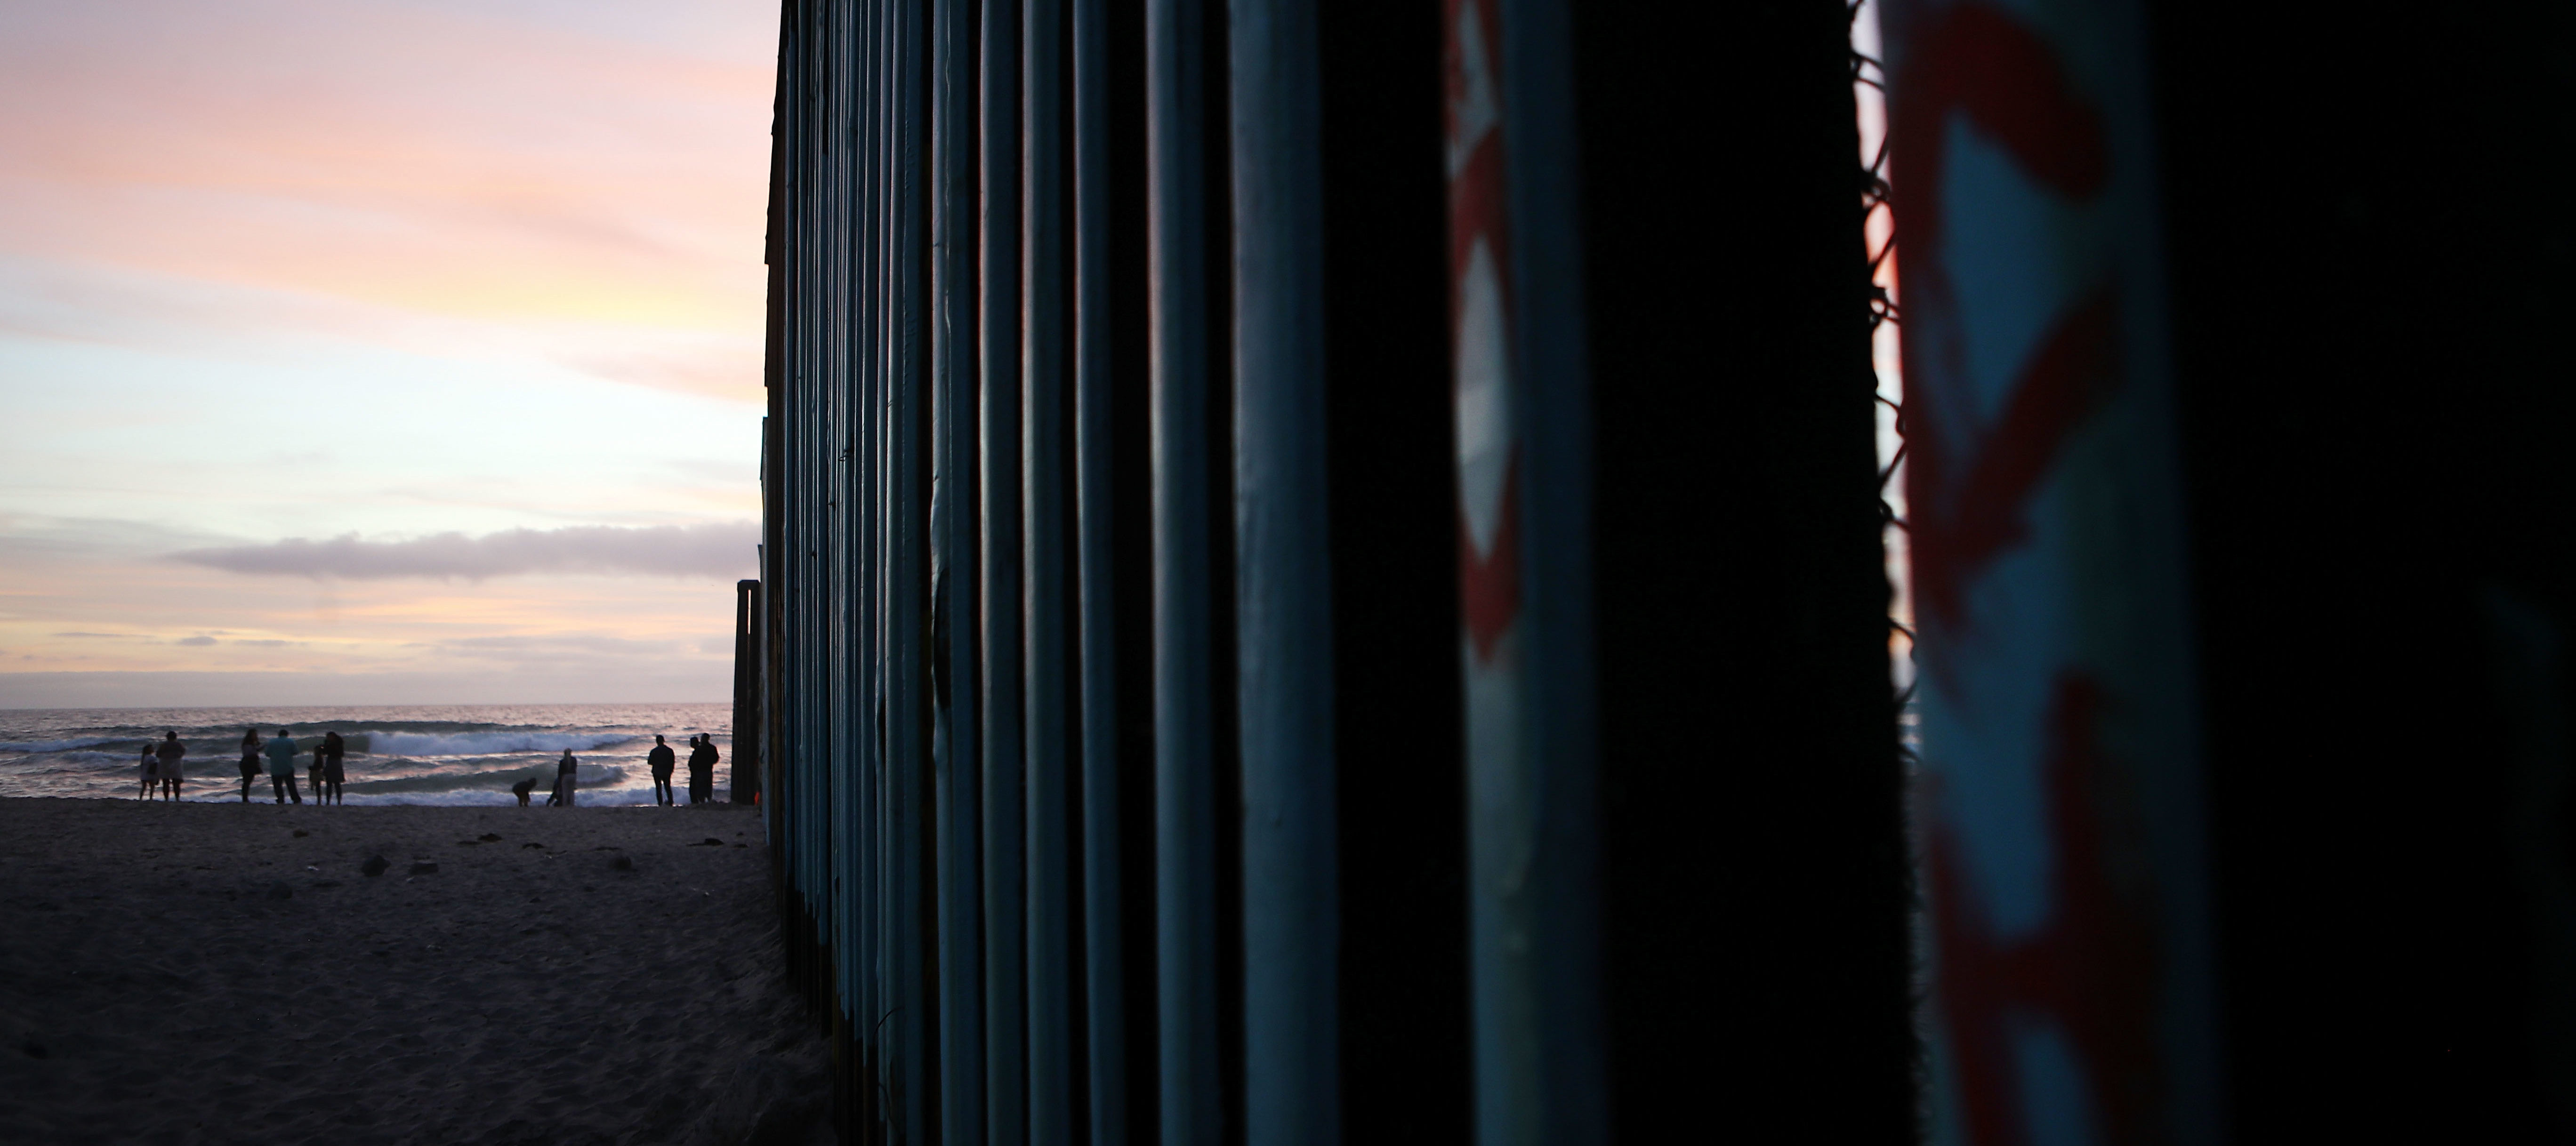 TIJUANA, MEXICO - APRIL 06: People gather on the beach along the U.S.-Mexico border fence (R) on April 6, 2018 in Tijuana, Mexico. President Trump has issued a decree for the National Guard to guard the 3,200 kilometer border between the United States and Mexico. (Photo by Mario Tama/Getty Images)